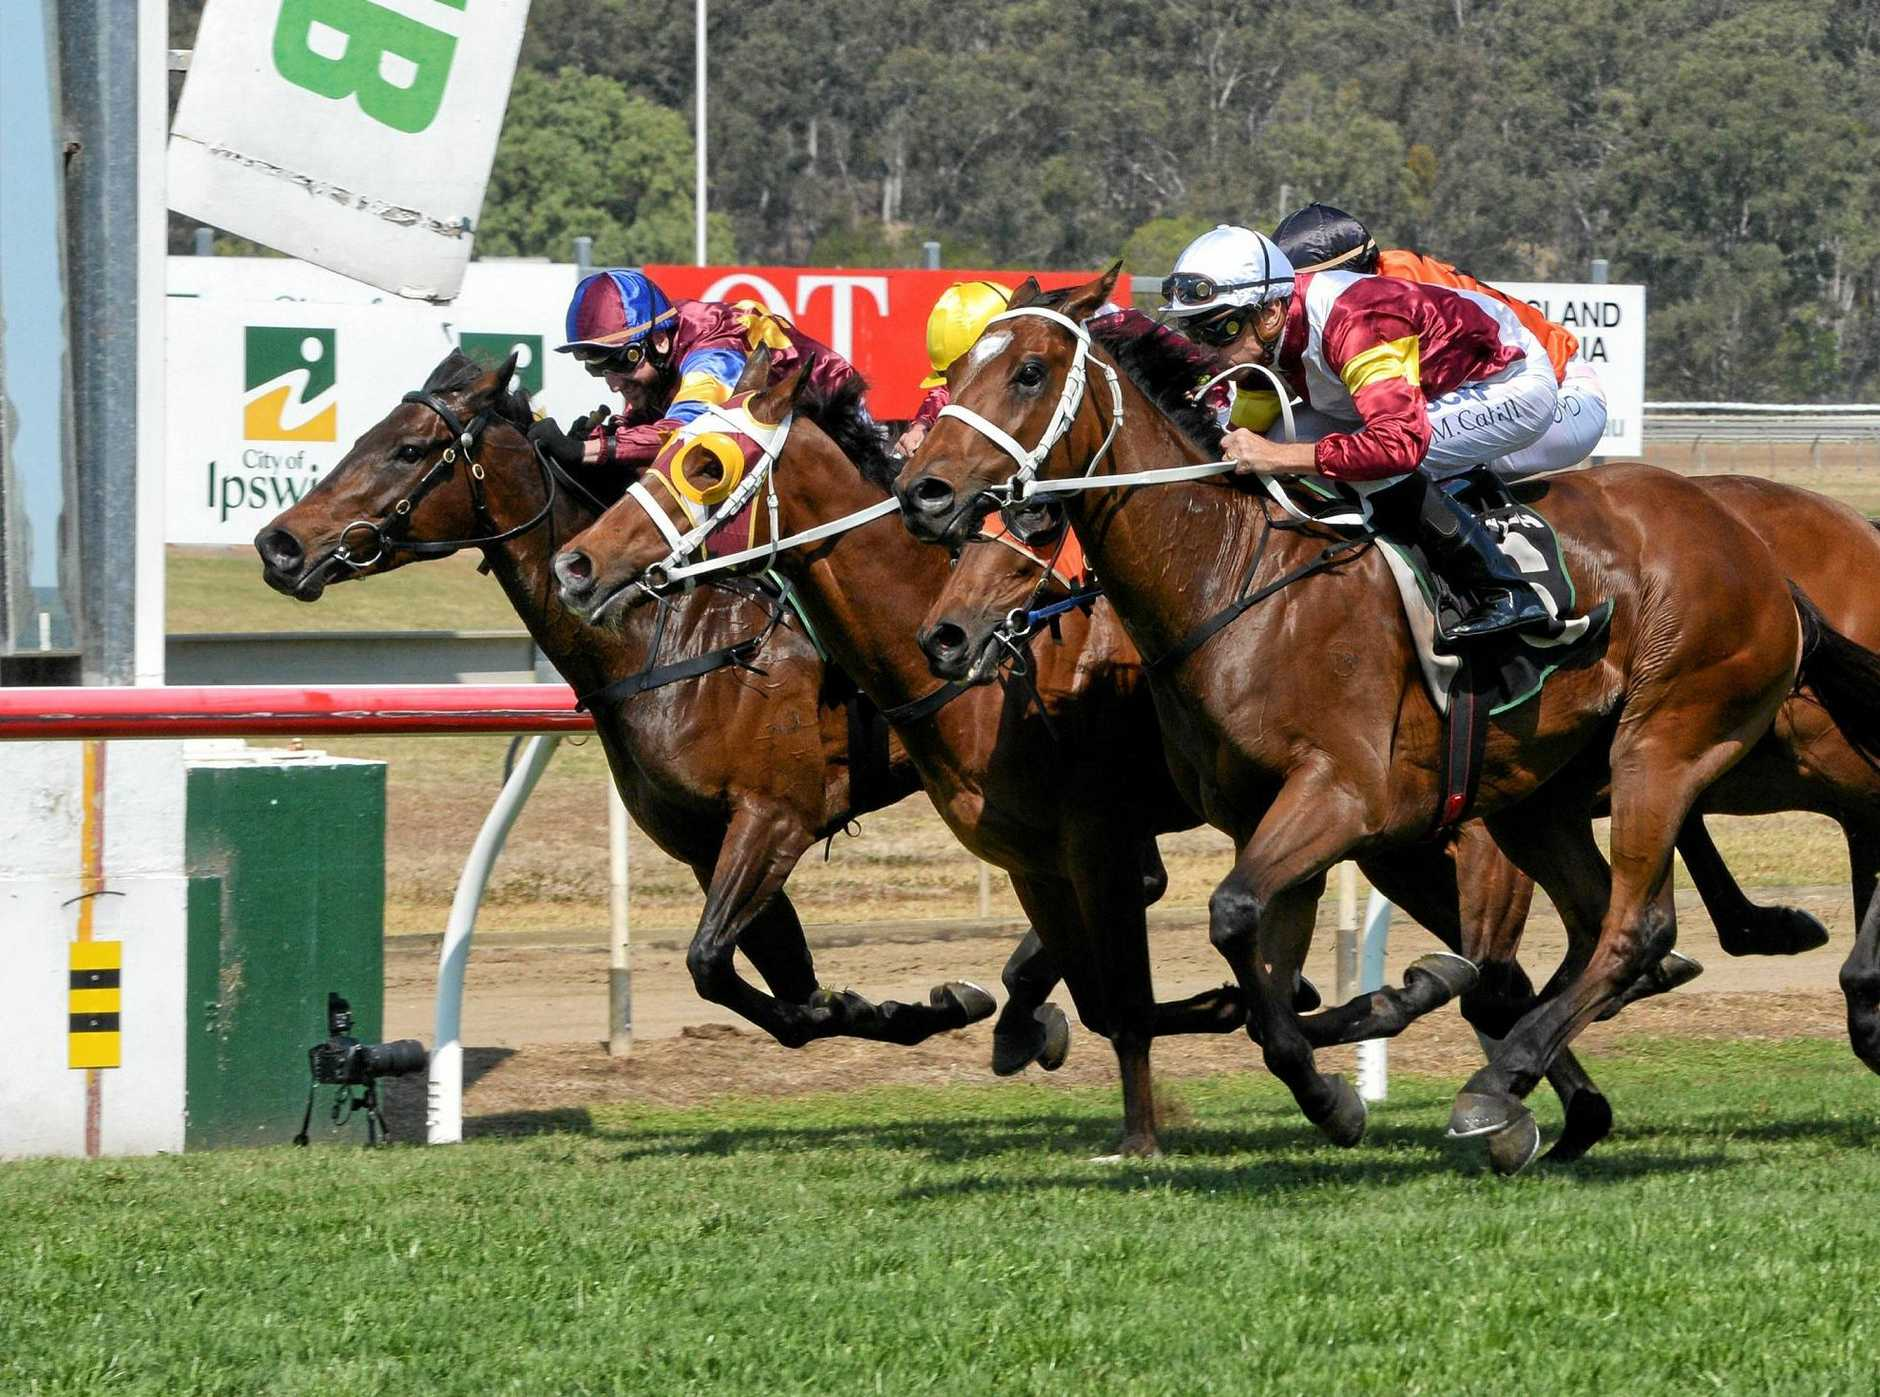 Loving Home (right) narrowly beats a tight field to win the City of Ipswich Spring Stayers Cup Open Handicap at Bundamba Racetrack on Saturday.